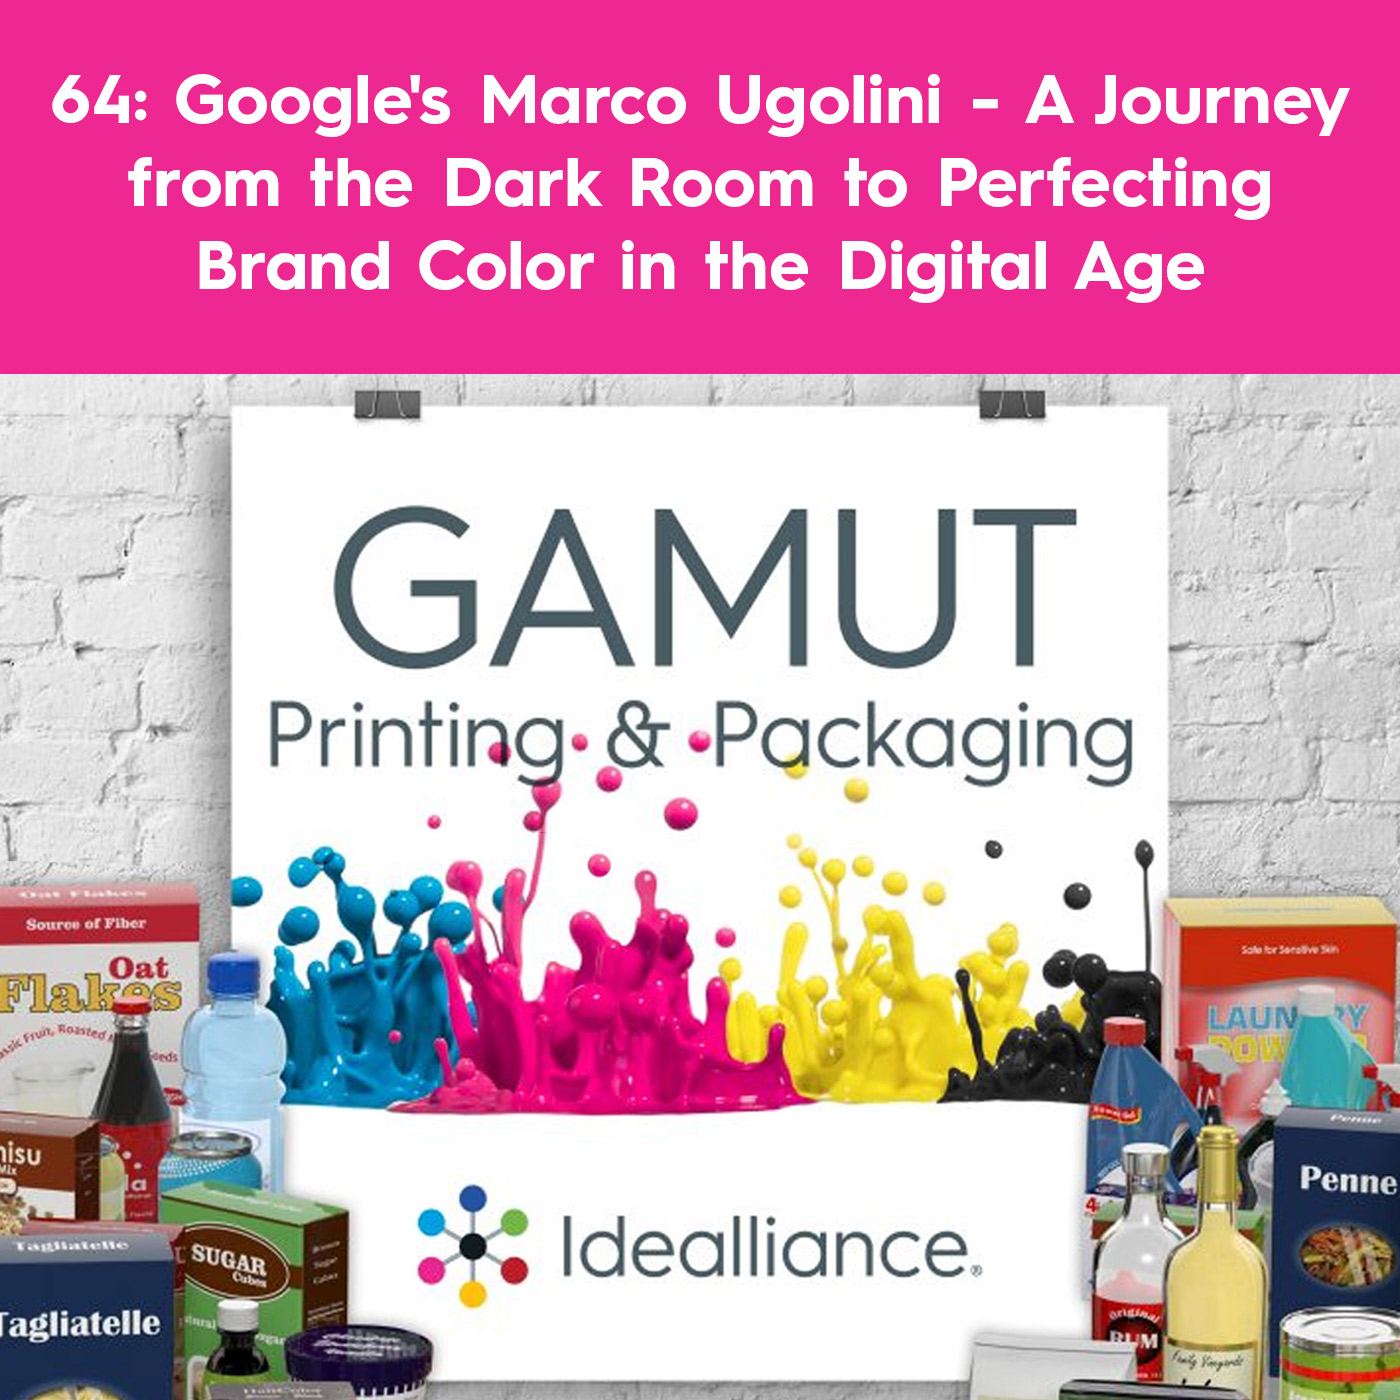 Google's Marco Ugolini - A Journey from the Dark Room to Perfecting Brand Color in the Digital Age | Idealliance GAMUT Podcast #64